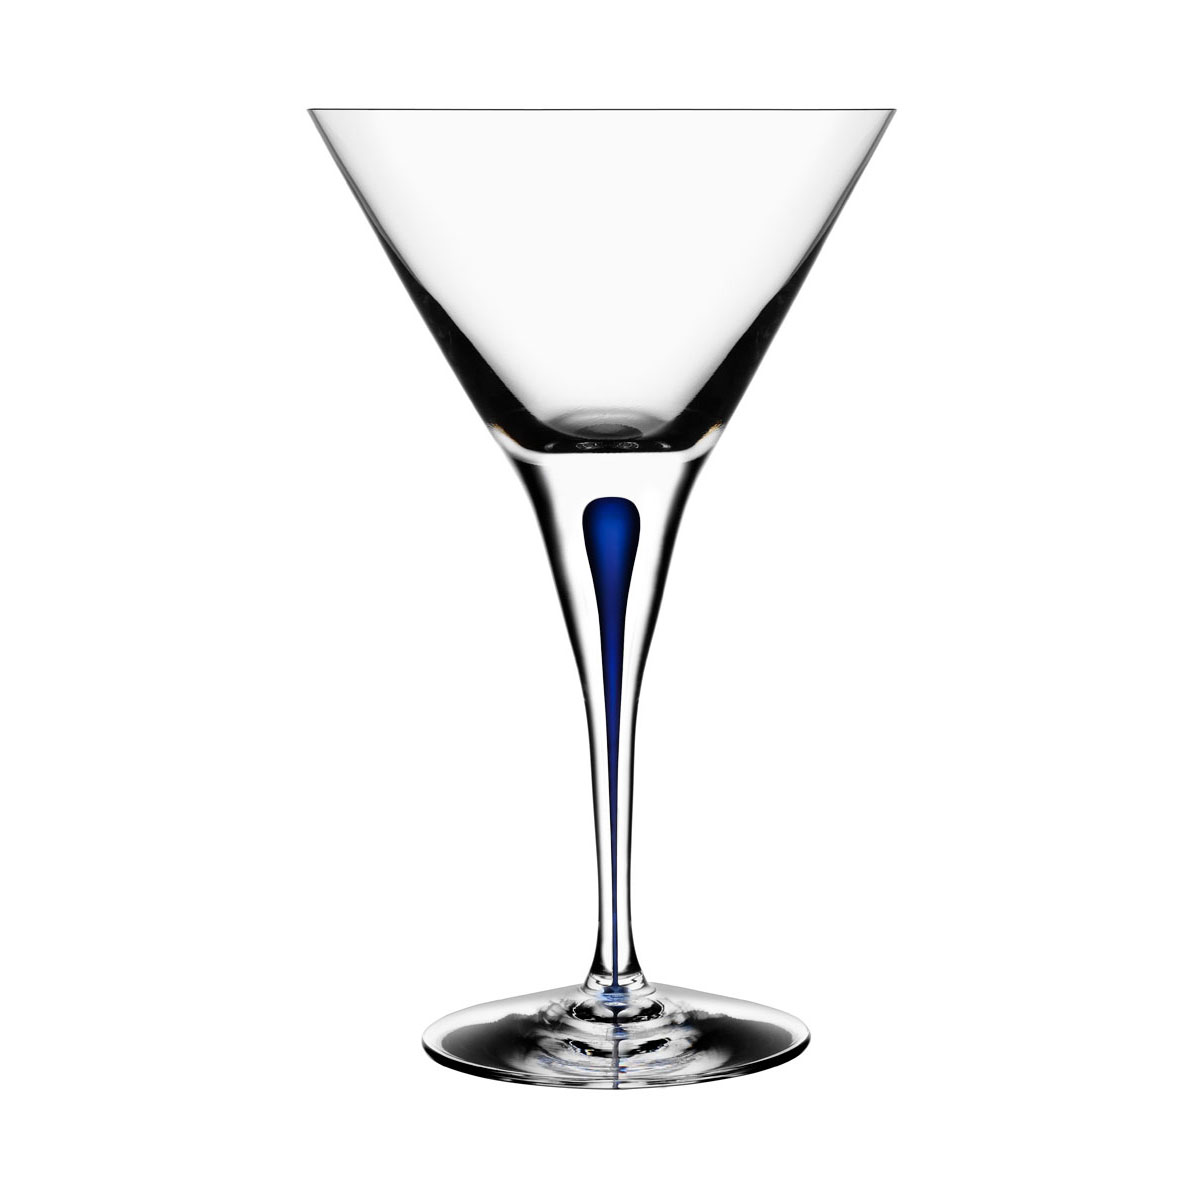 Orrefors Crystal, Intermezzo Blue Crystal Martini, Single